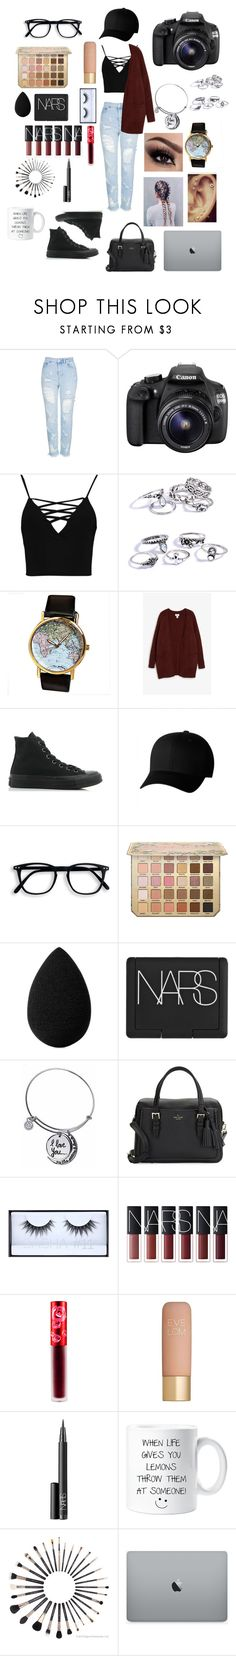 """""""Outfit #65- Photographer!"""" by jaelyn-davis447 ❤ liked on Polyvore featuring Topshop, Eos, Boohoo, Monki, Converse, Flexfit, beautyblender, NARS Cosmetics, Kate Spade and Huda Beauty"""